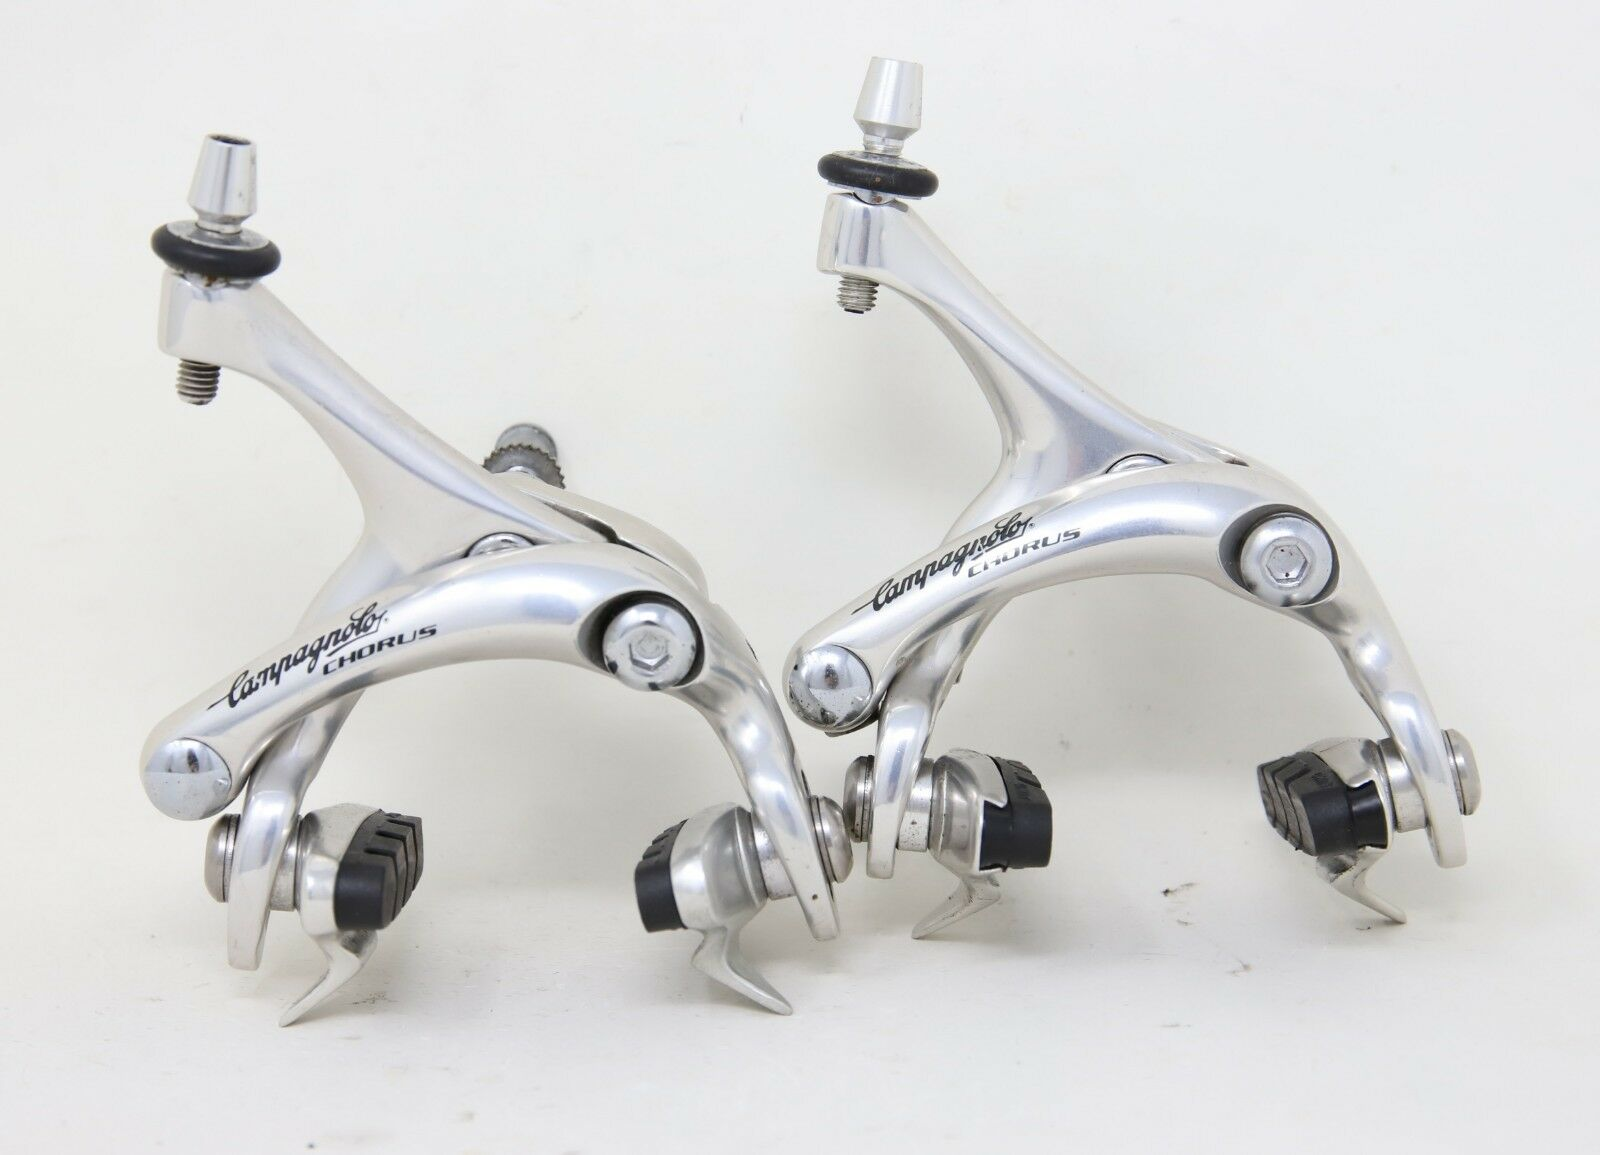 CAMPAGNOLO CHORUS BRAKE CALIPERS  BRAKES MID 90s SIDE PULL DUAL PIVOT VINTAGE OLD  get the latest